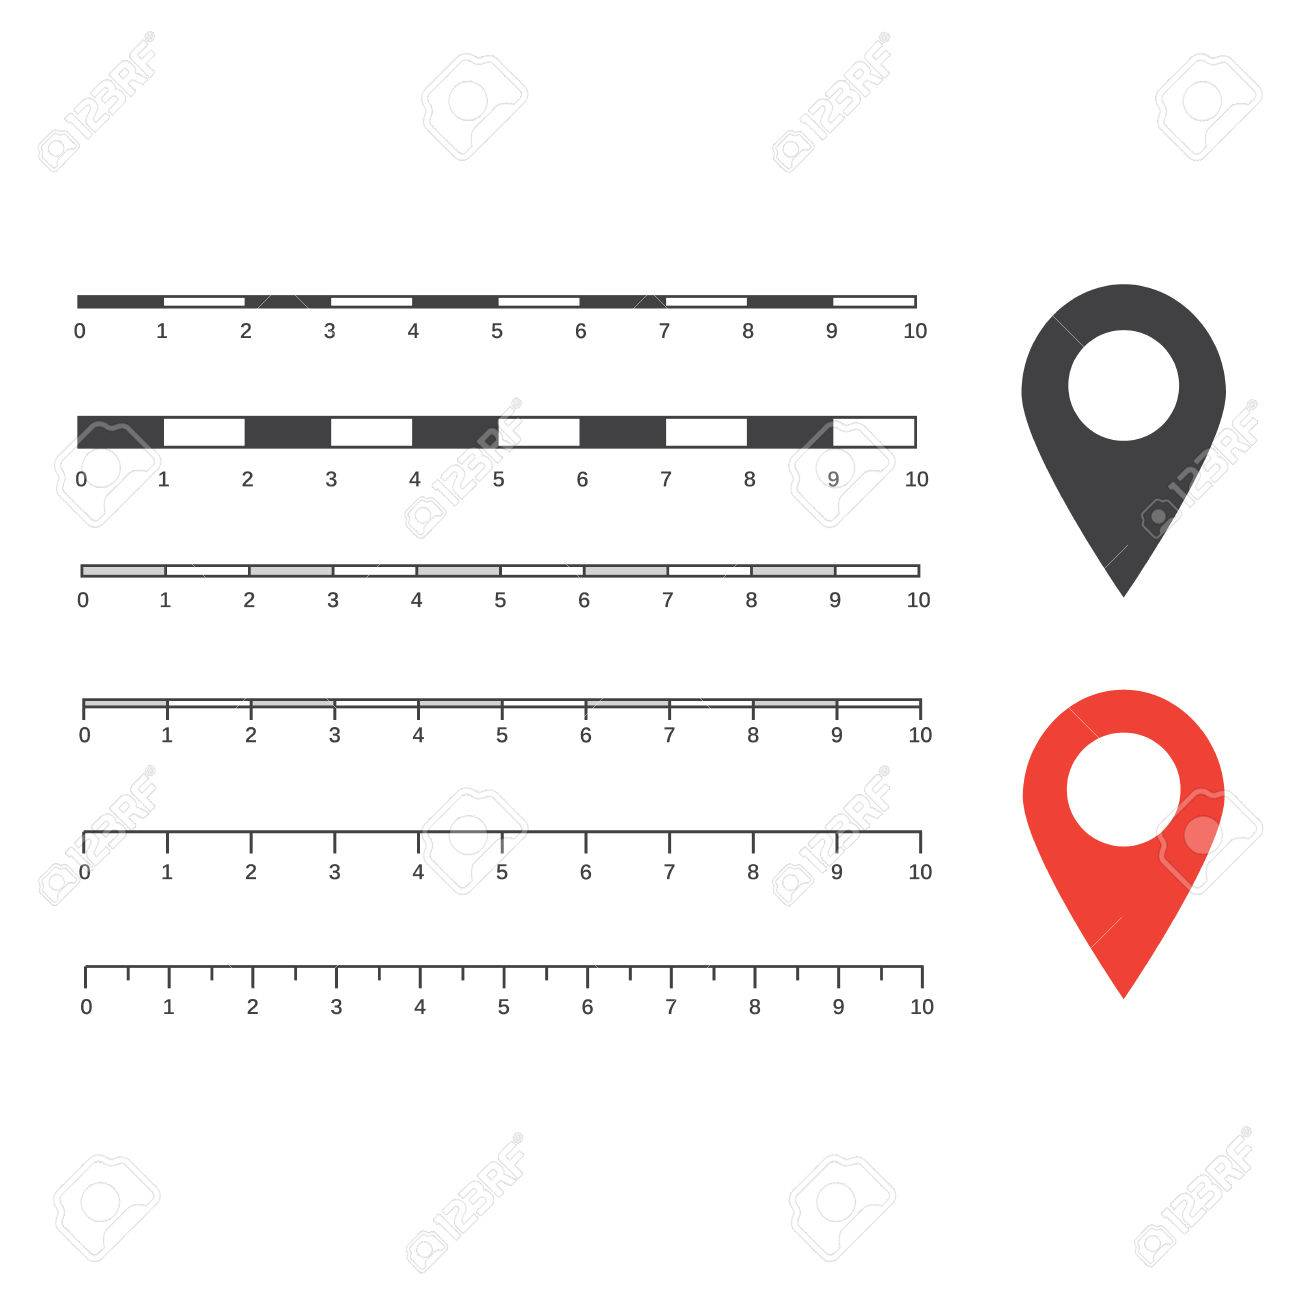 Vector map scales graphics for measuring distances.